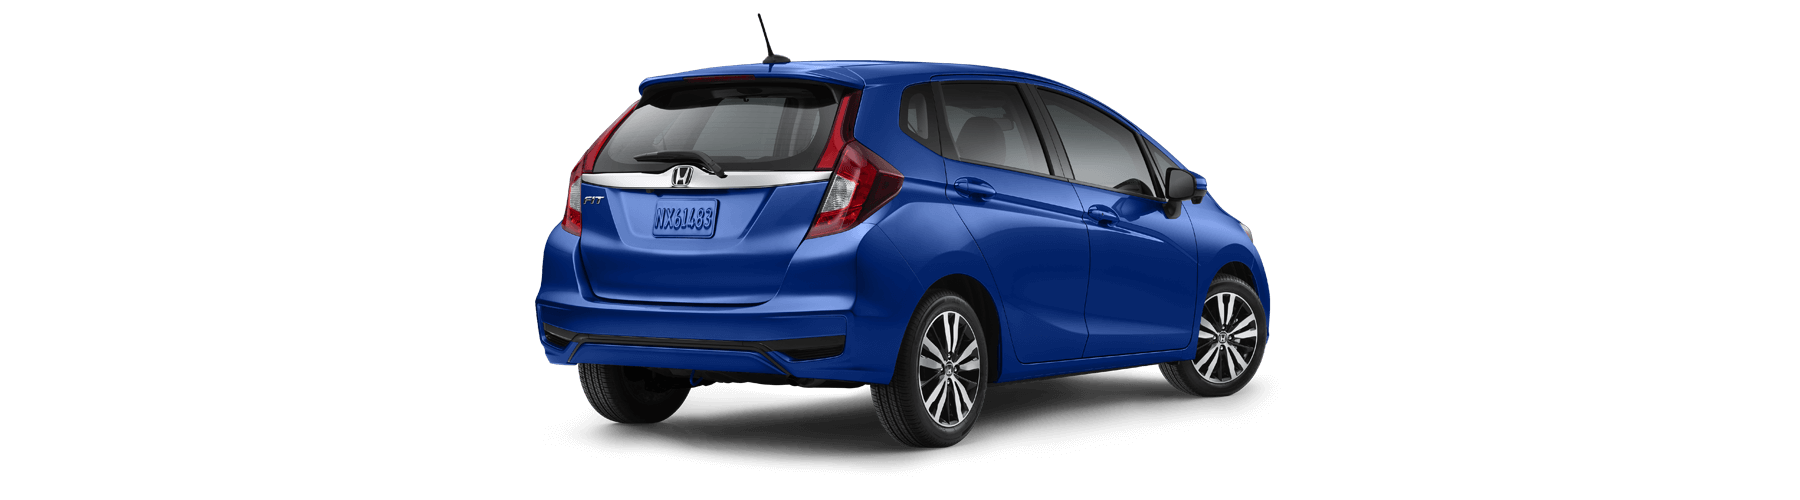 2018 Honda Fit | New England Honda Dealers Association ...